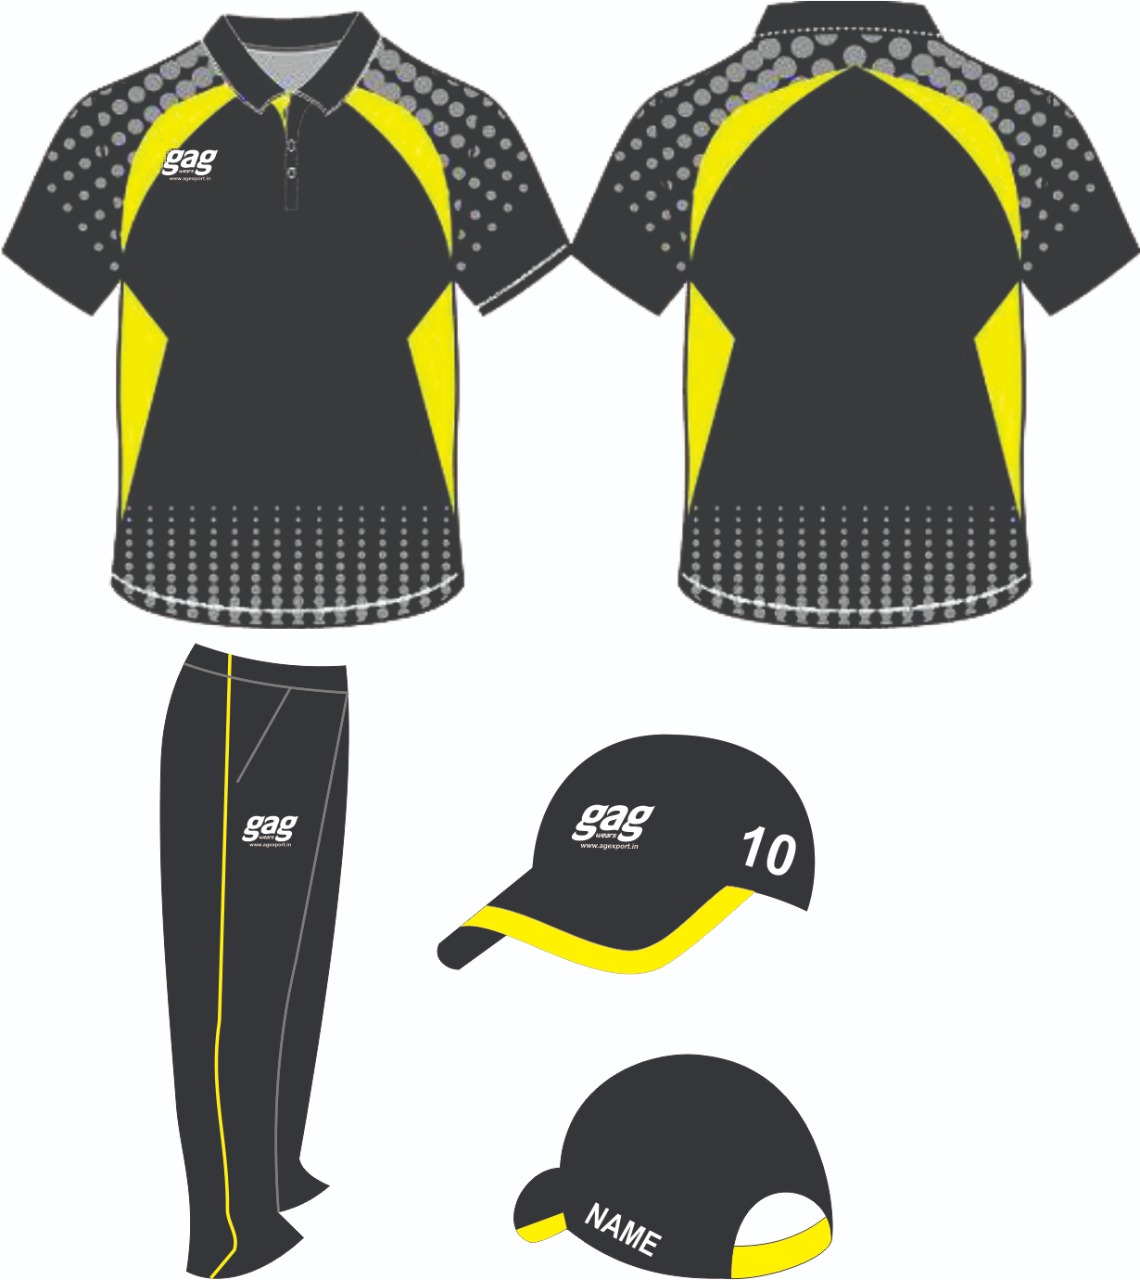 Cricket Uniform Manufacturers in Jalandhar